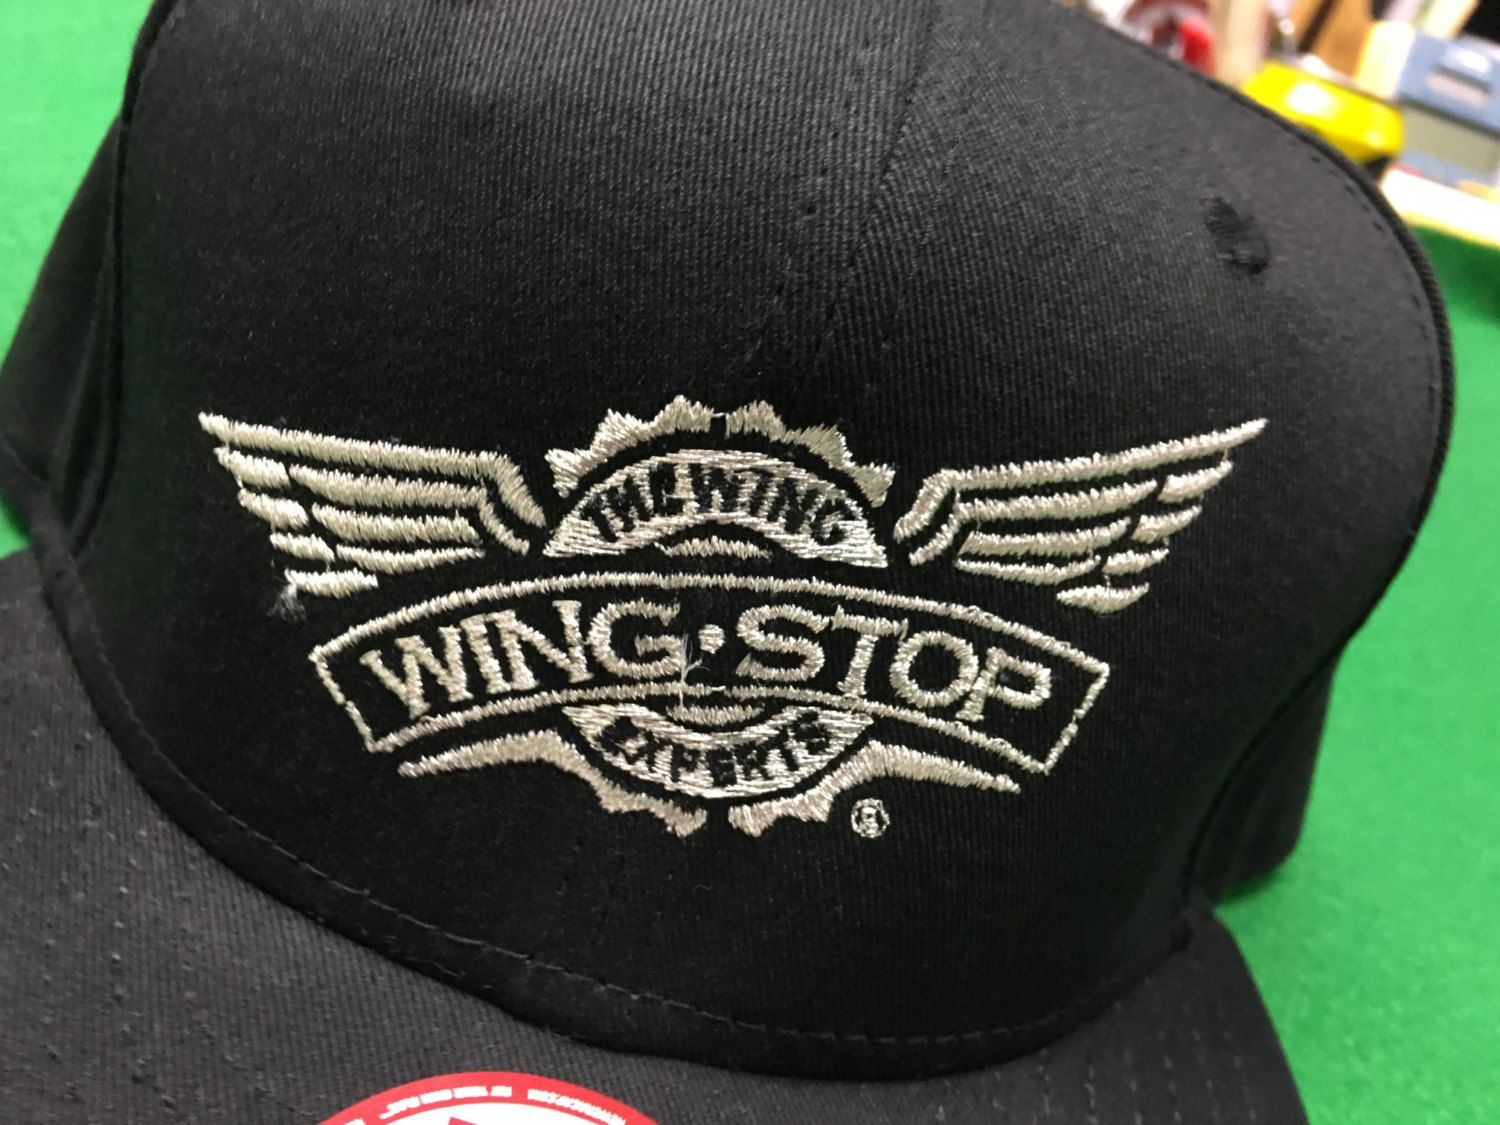 quality design 37af5 d0488 Wing Stop - The Wing Experts Adjustable Snapback Cap by CoryCranksOutHats  on Etsy